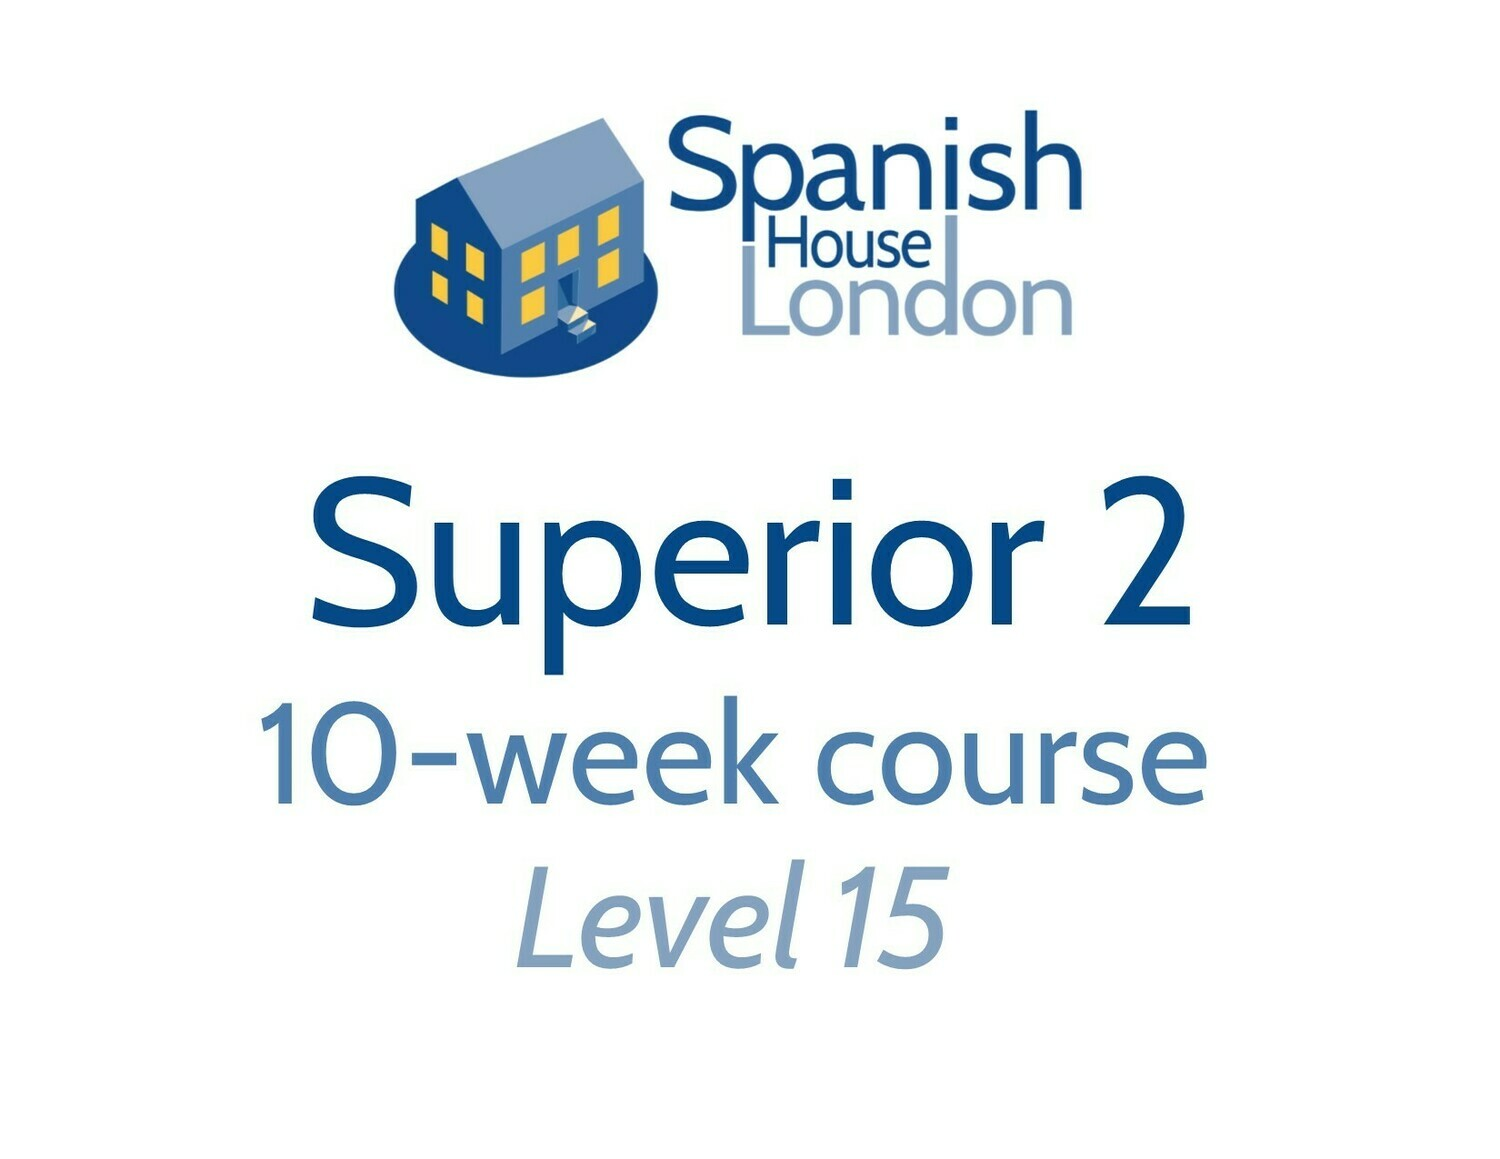 Superior 2 Course starting on 30th June at 7.30pm in Clapham North